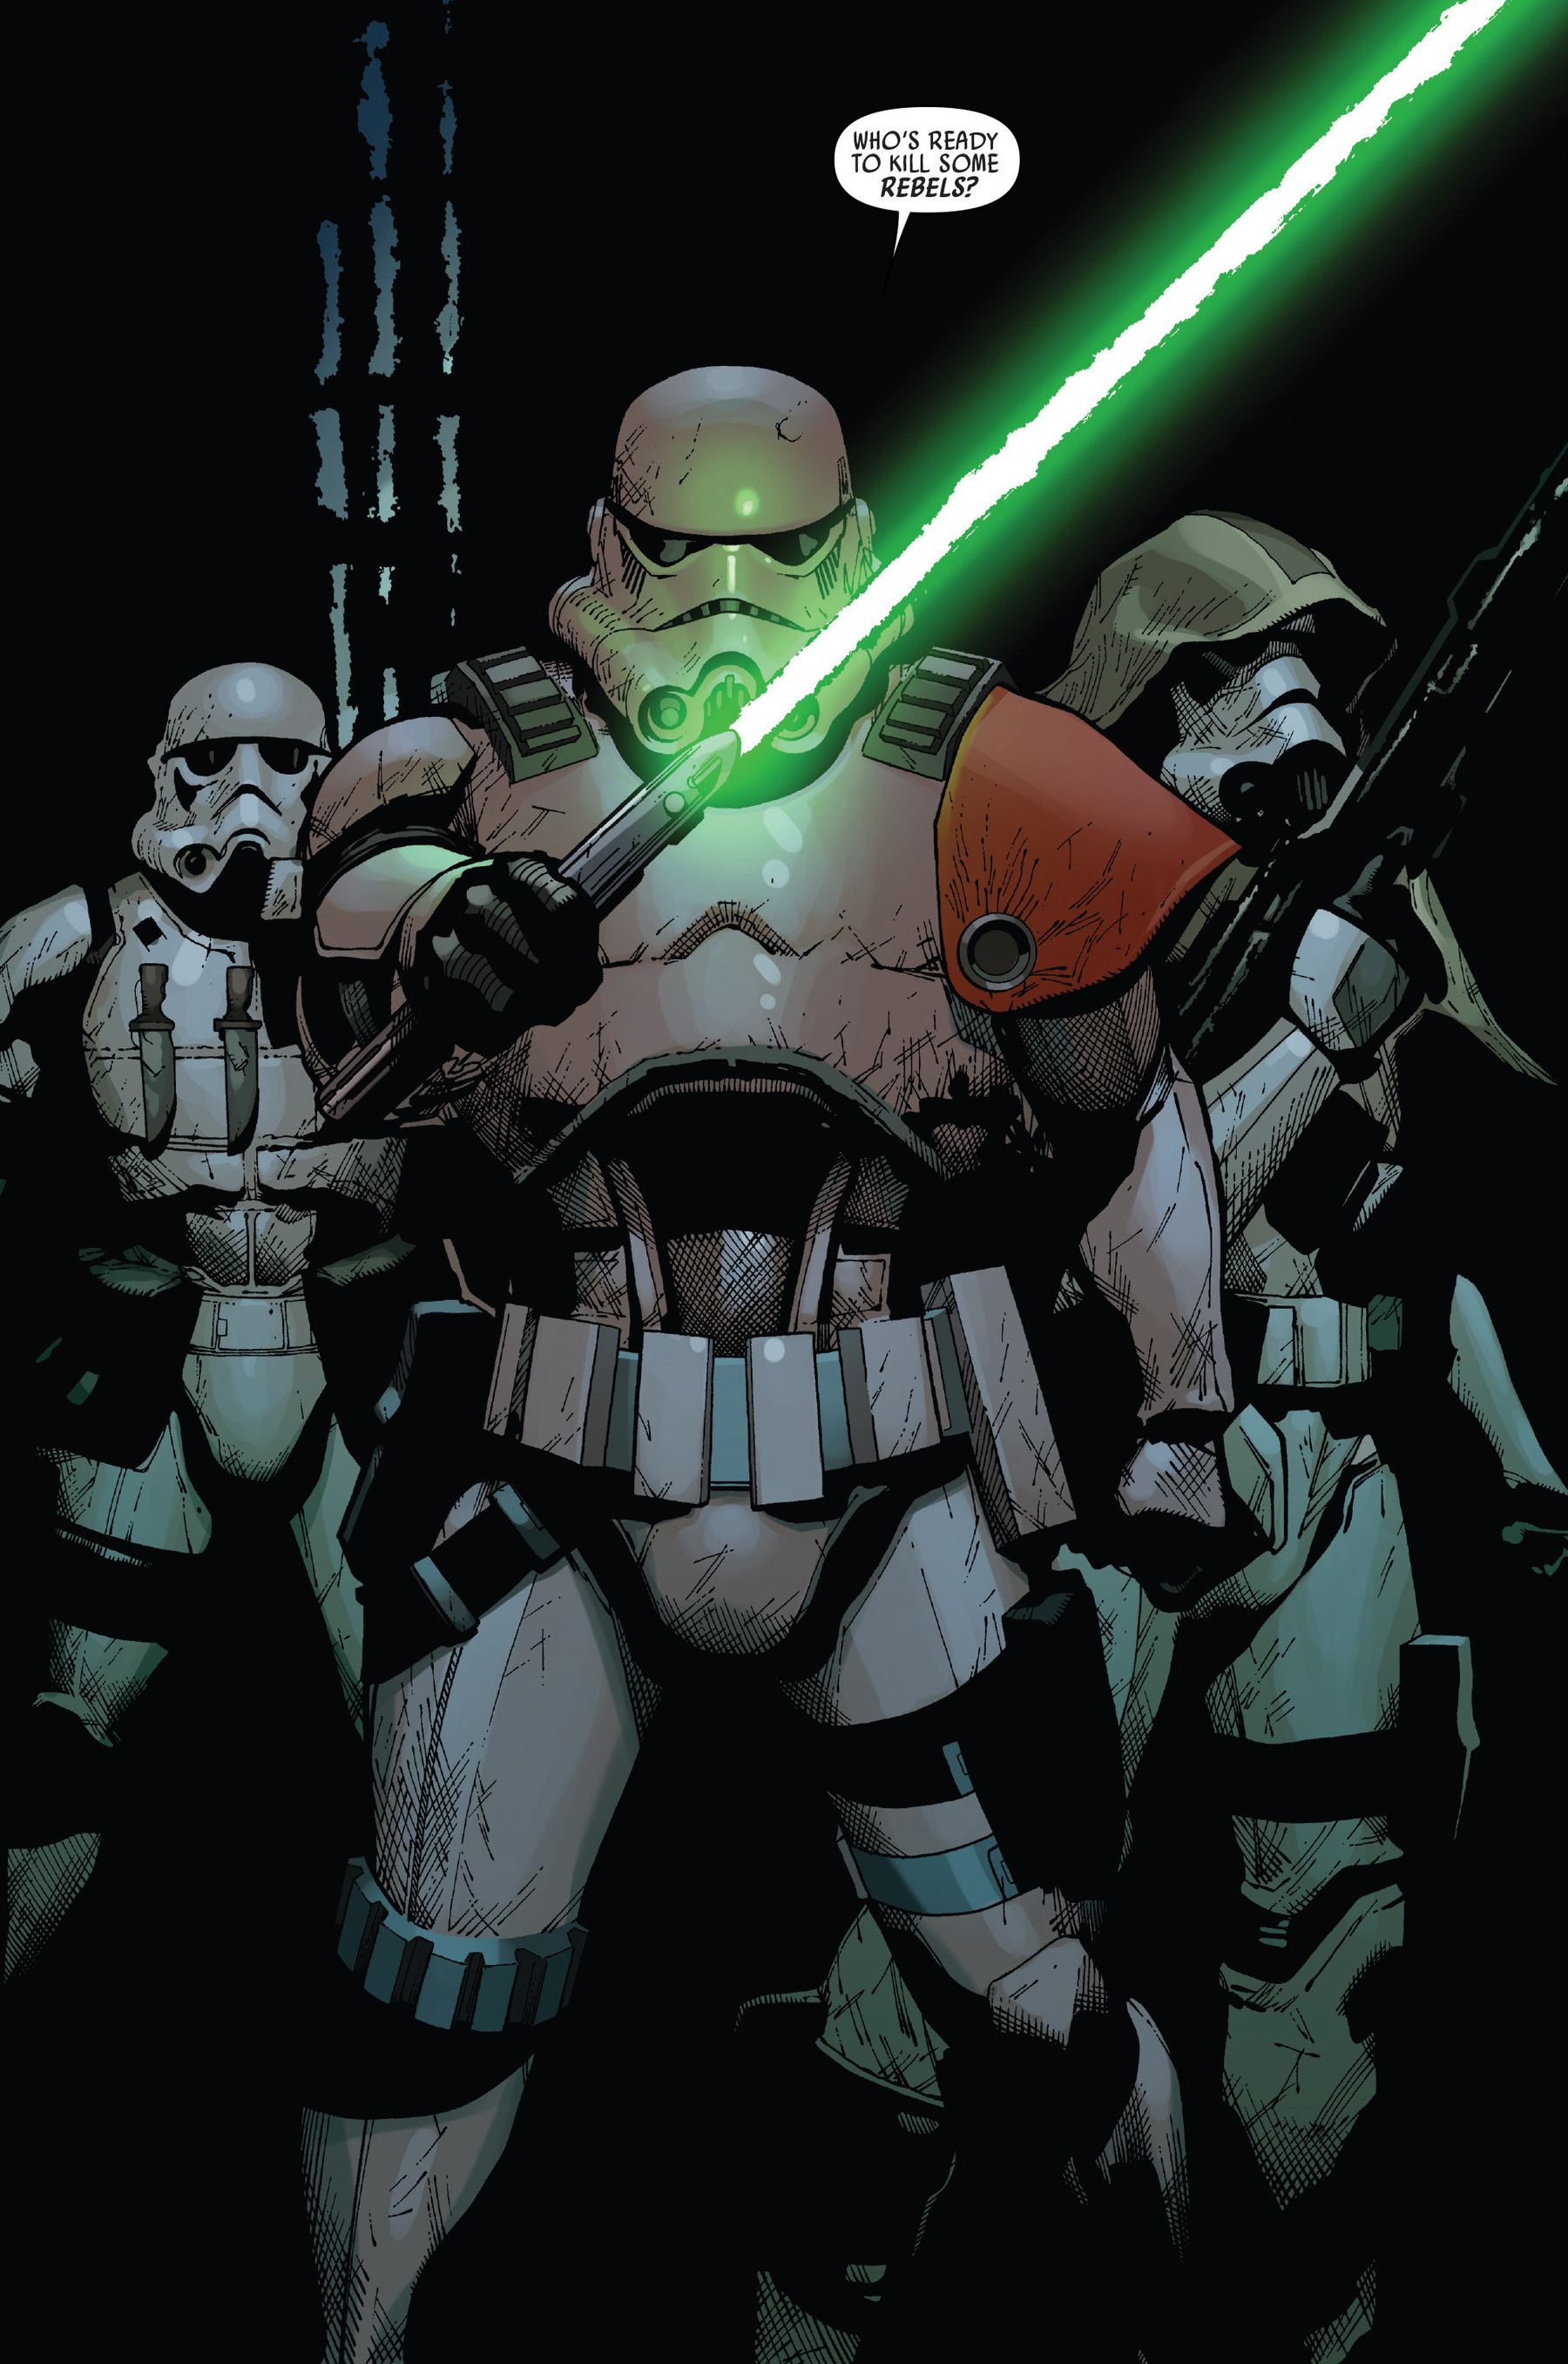 New 'Elite' STORMTROOPERS Coming To STAR WARS Comics